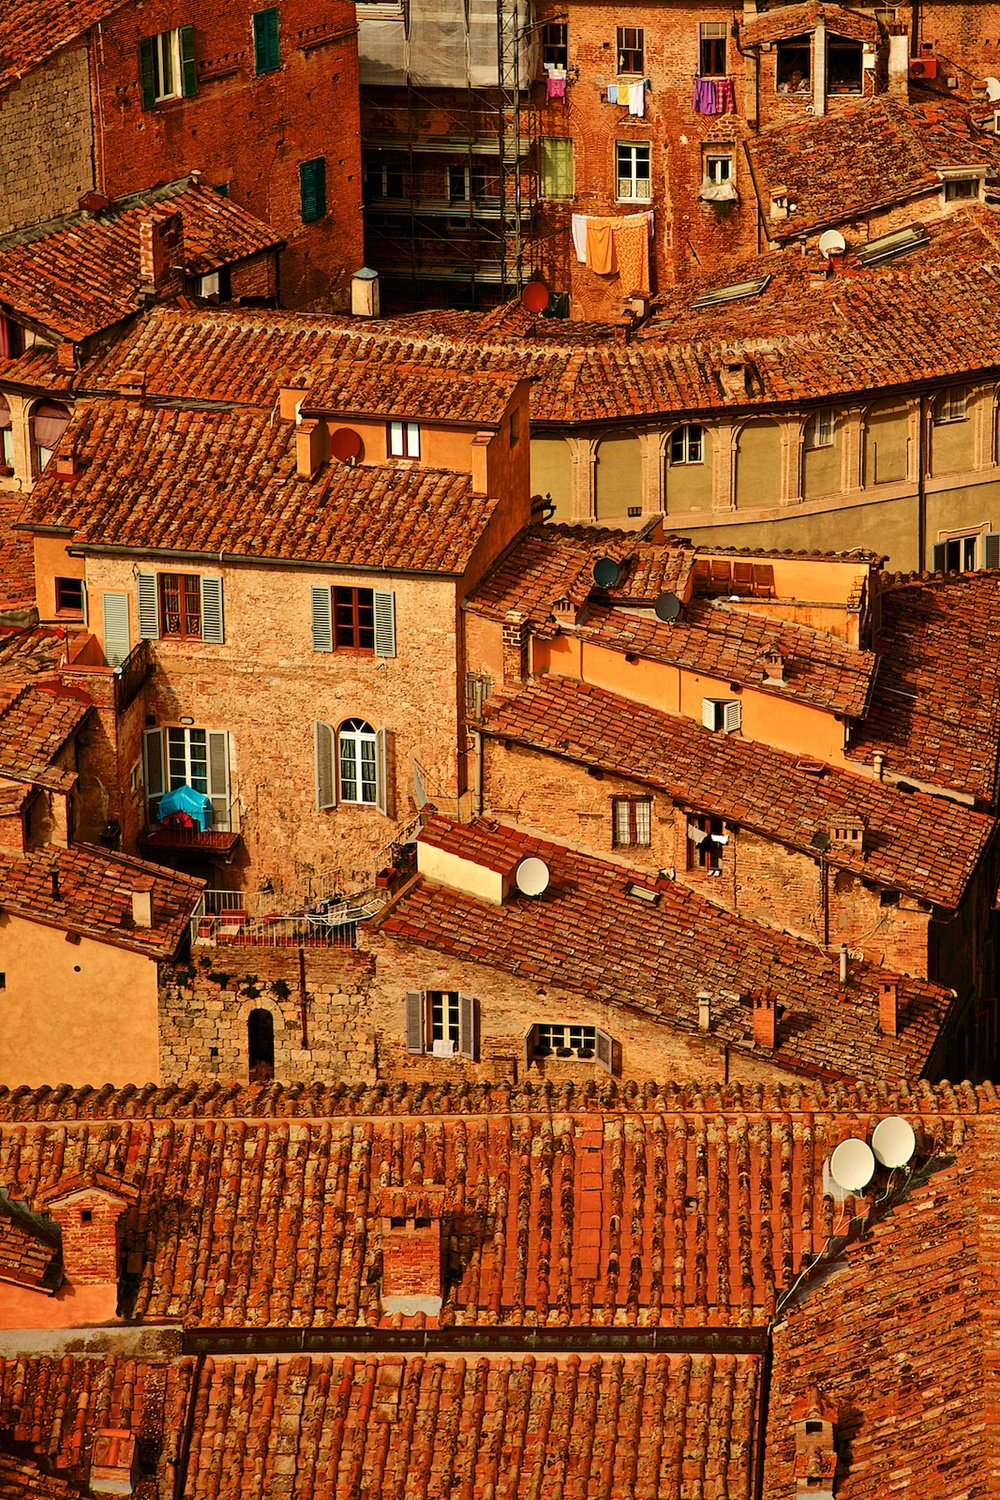 roofs-of-siena-toscana-tuscany-denis-bosnic-photography- 10.jpg